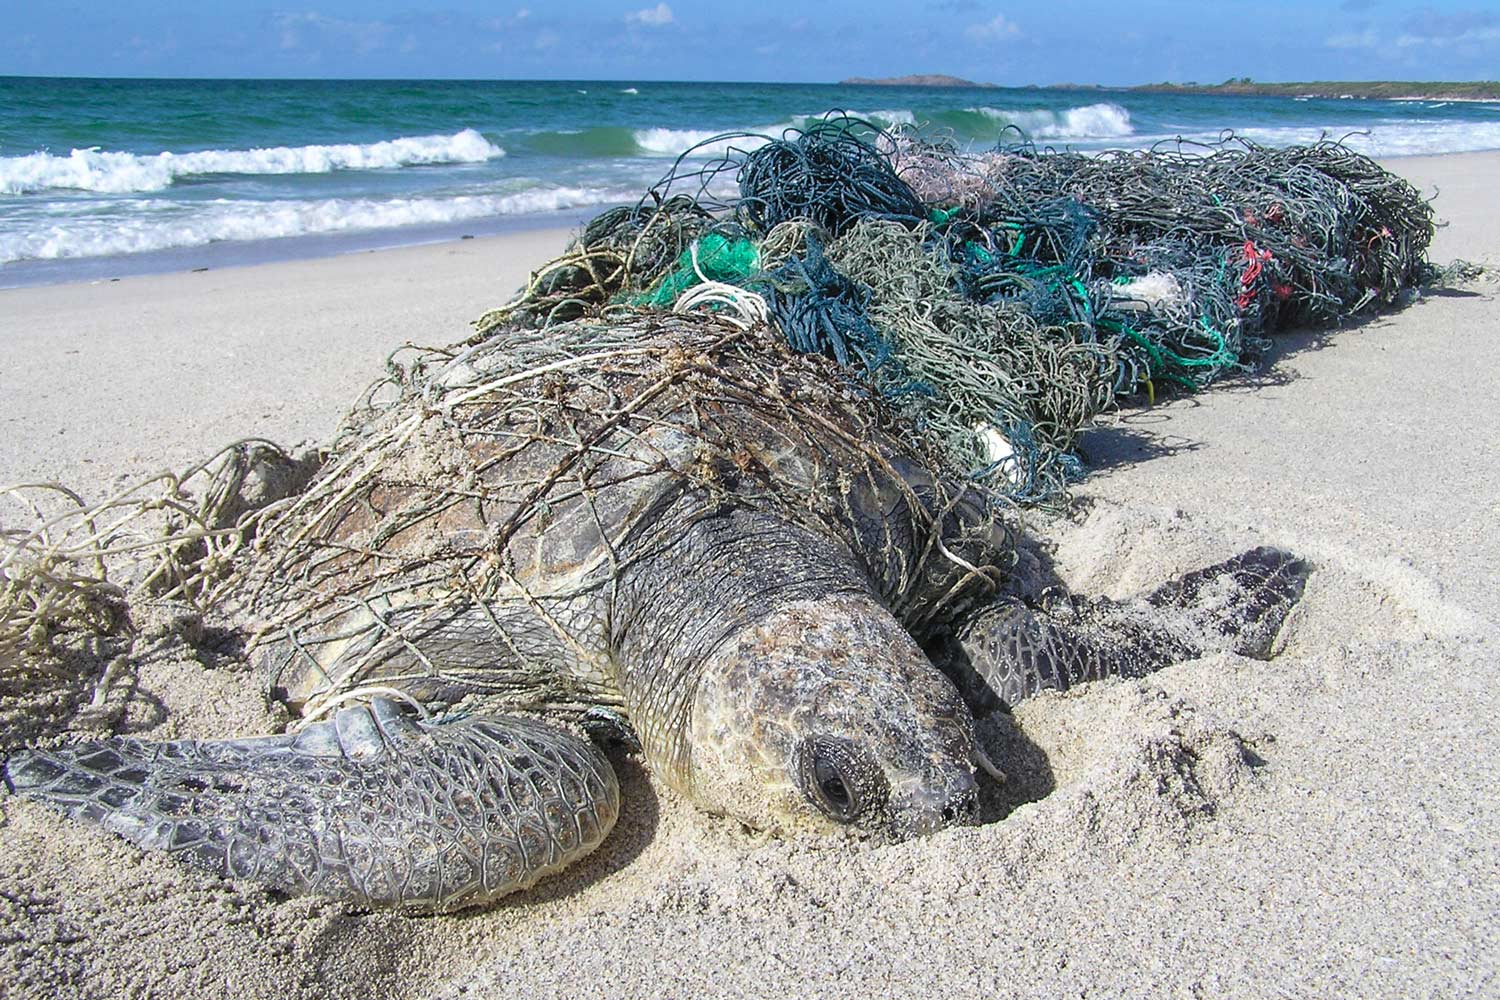 A sea turtle lies ensnared in abandoned fishing nets. (Photo by Jane Dermer/Courtesy Ghost Nets Australia)